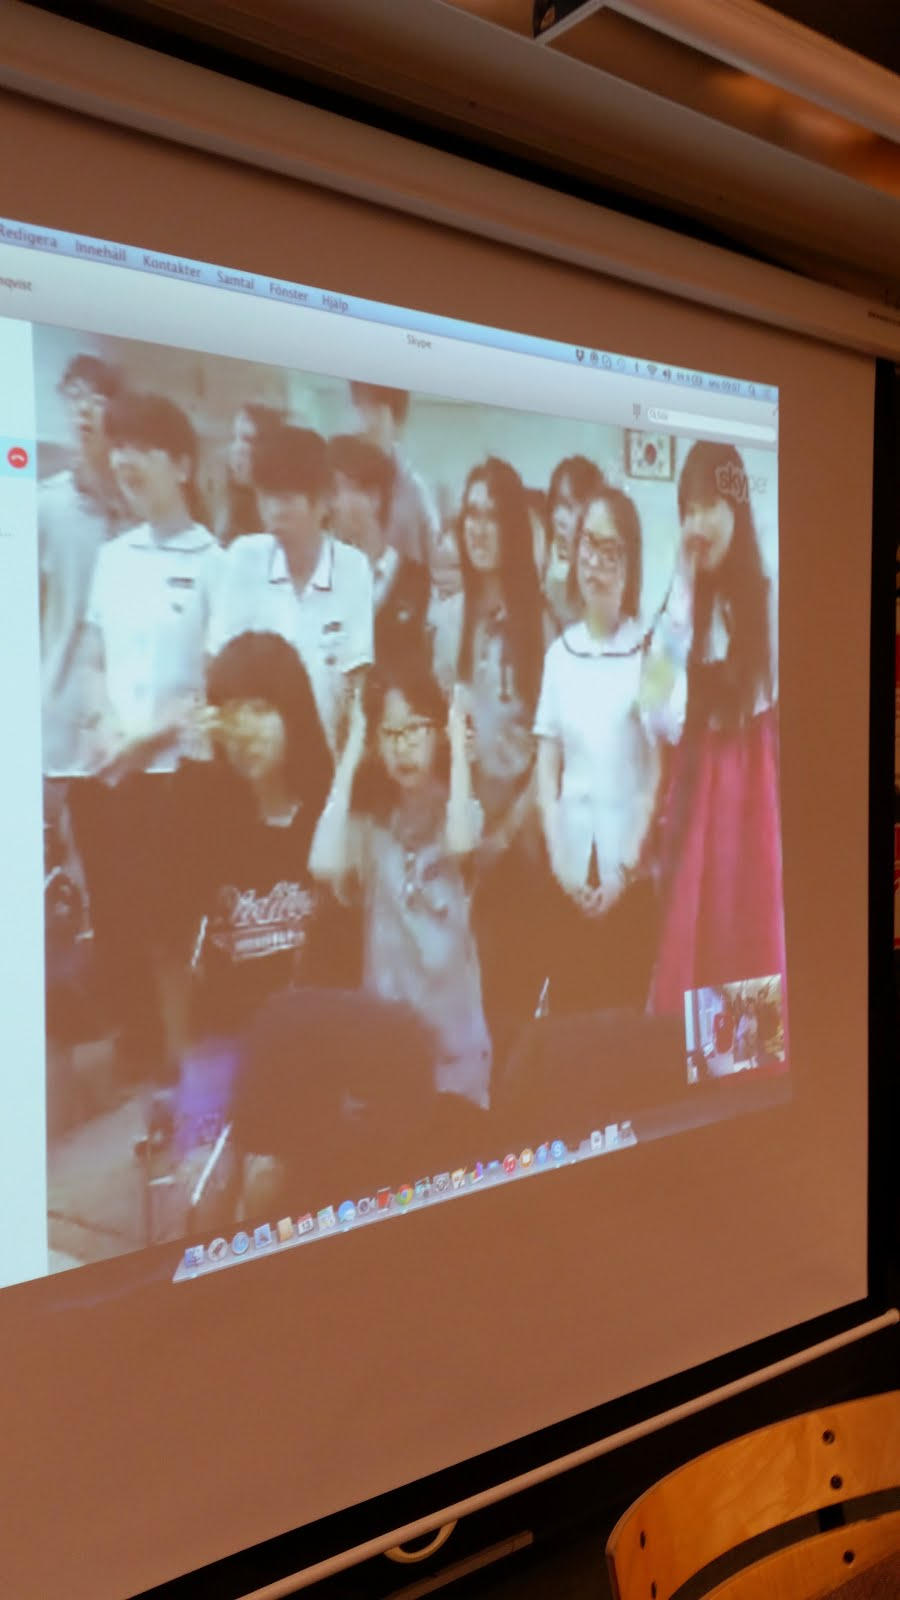 Skyping with South Korea